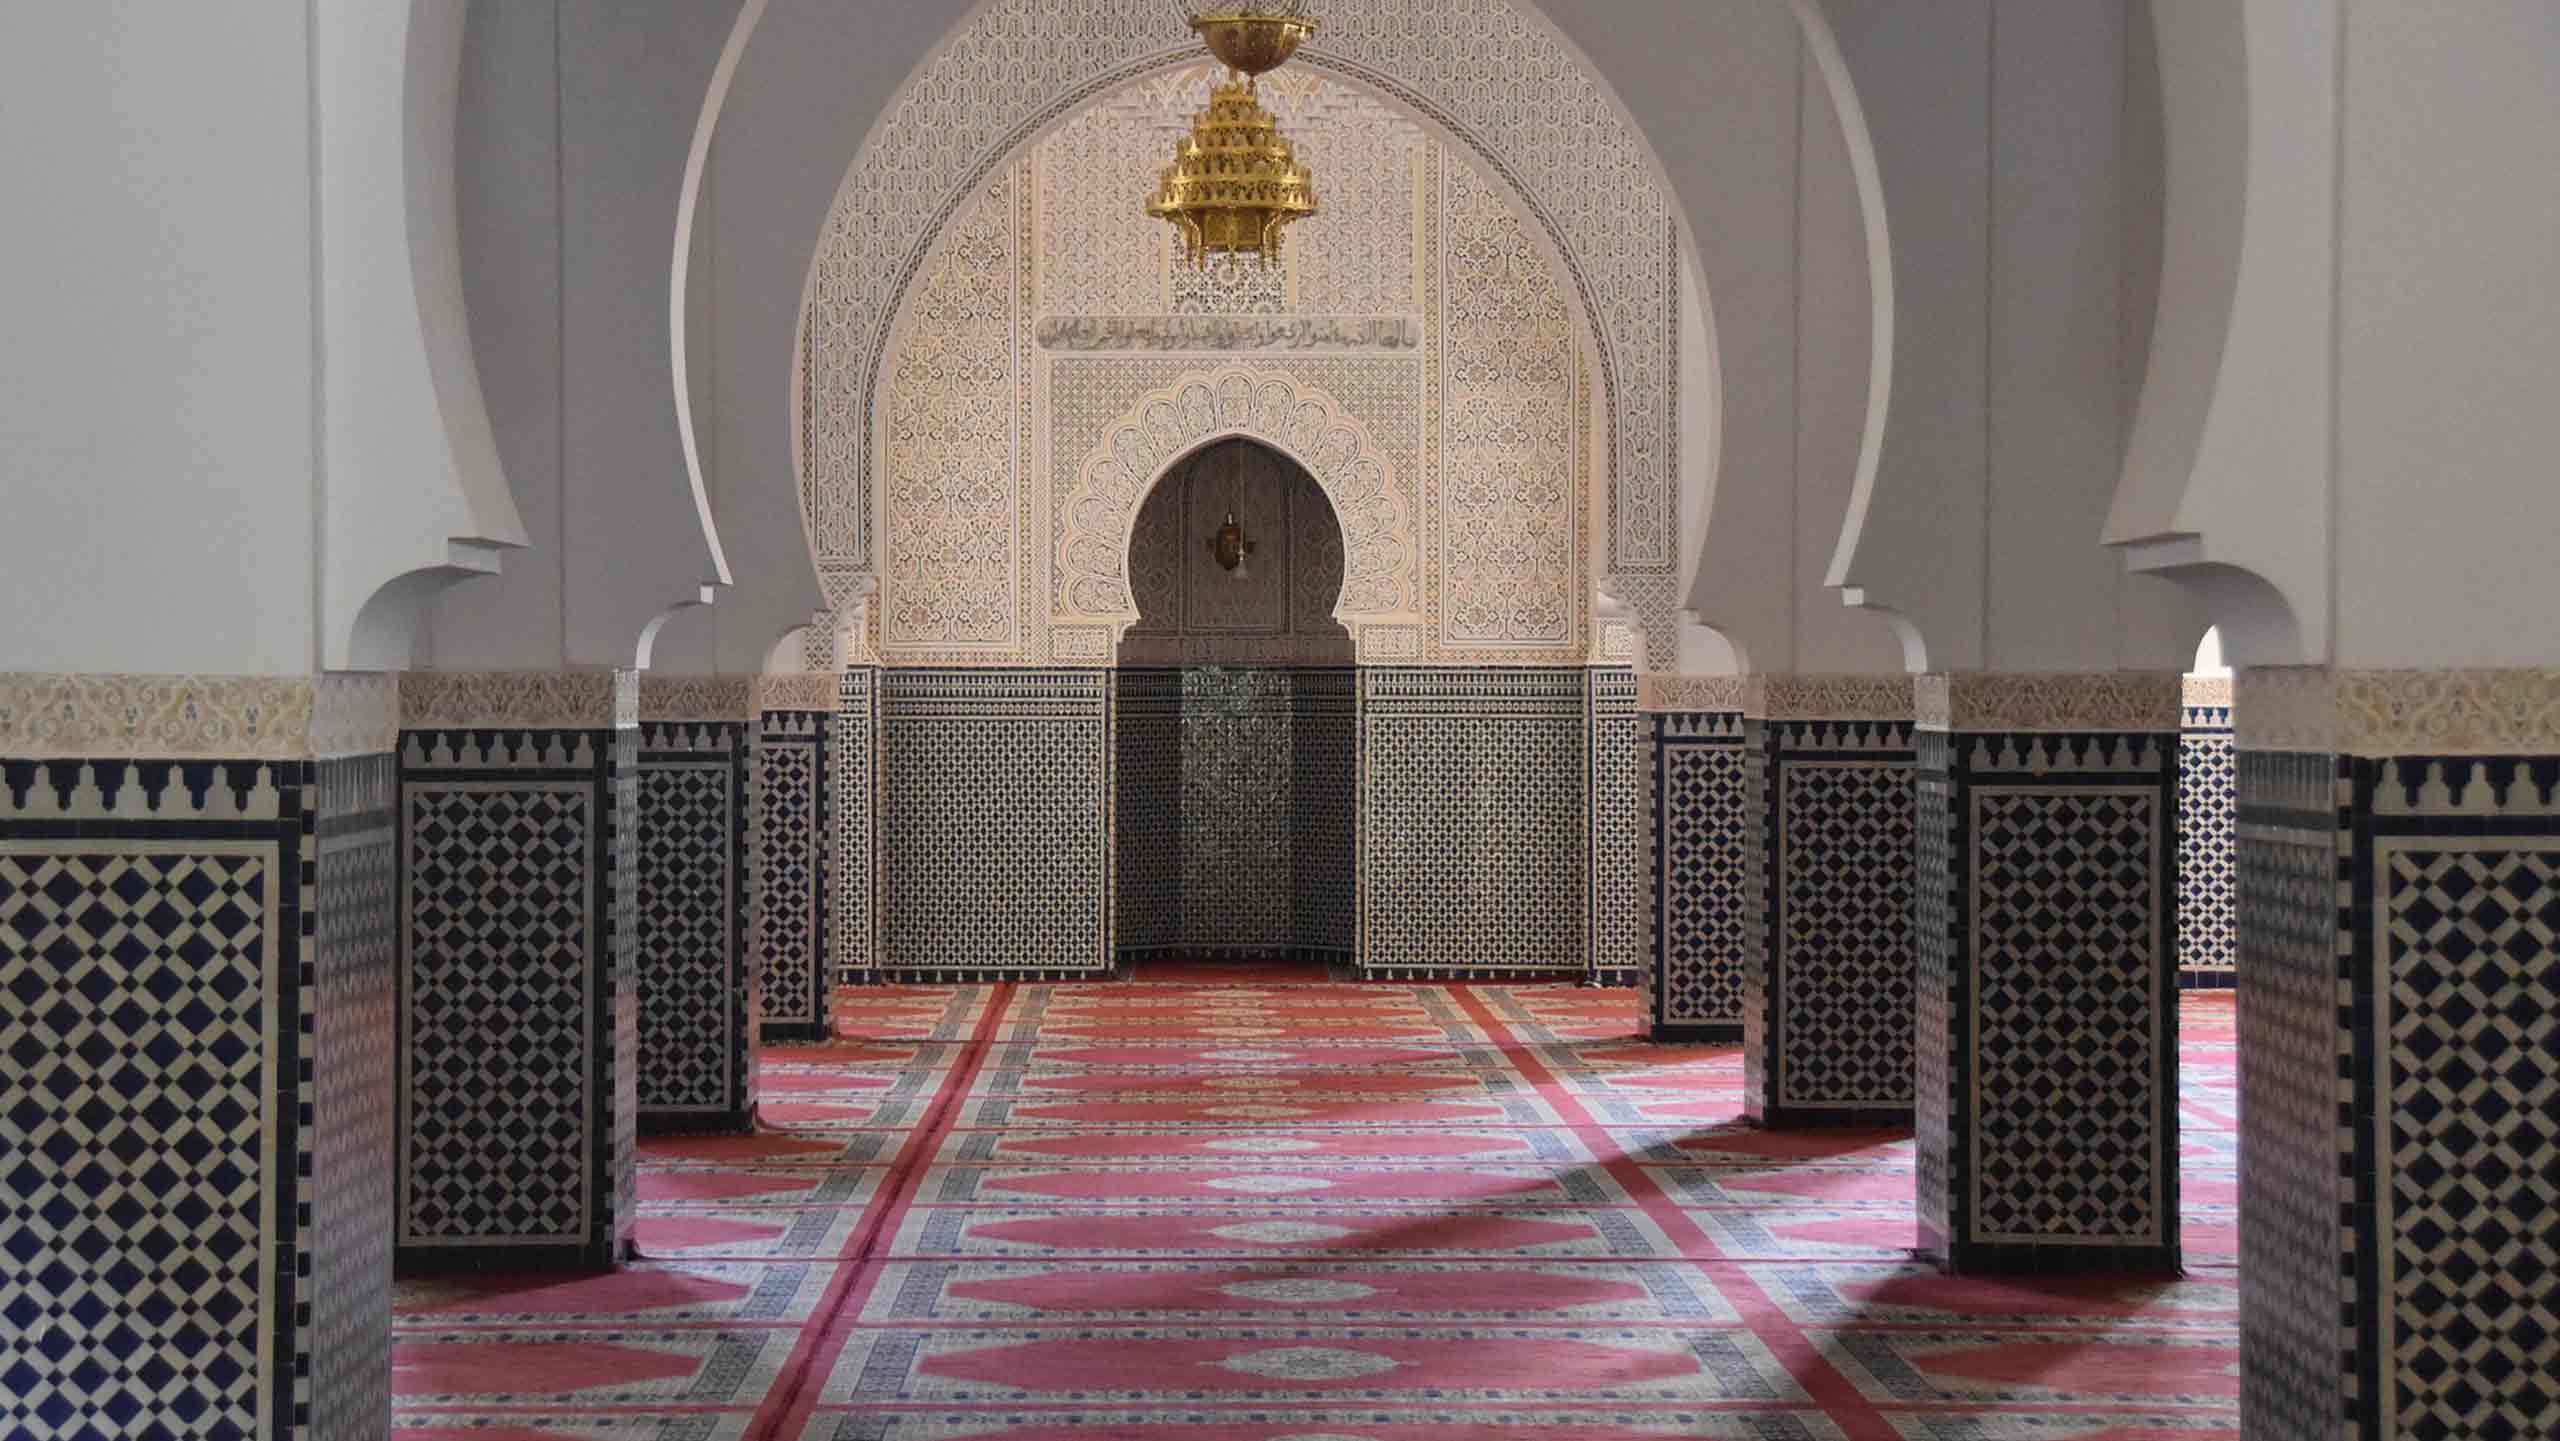 interior of mosque with mosaic on walls and carpet